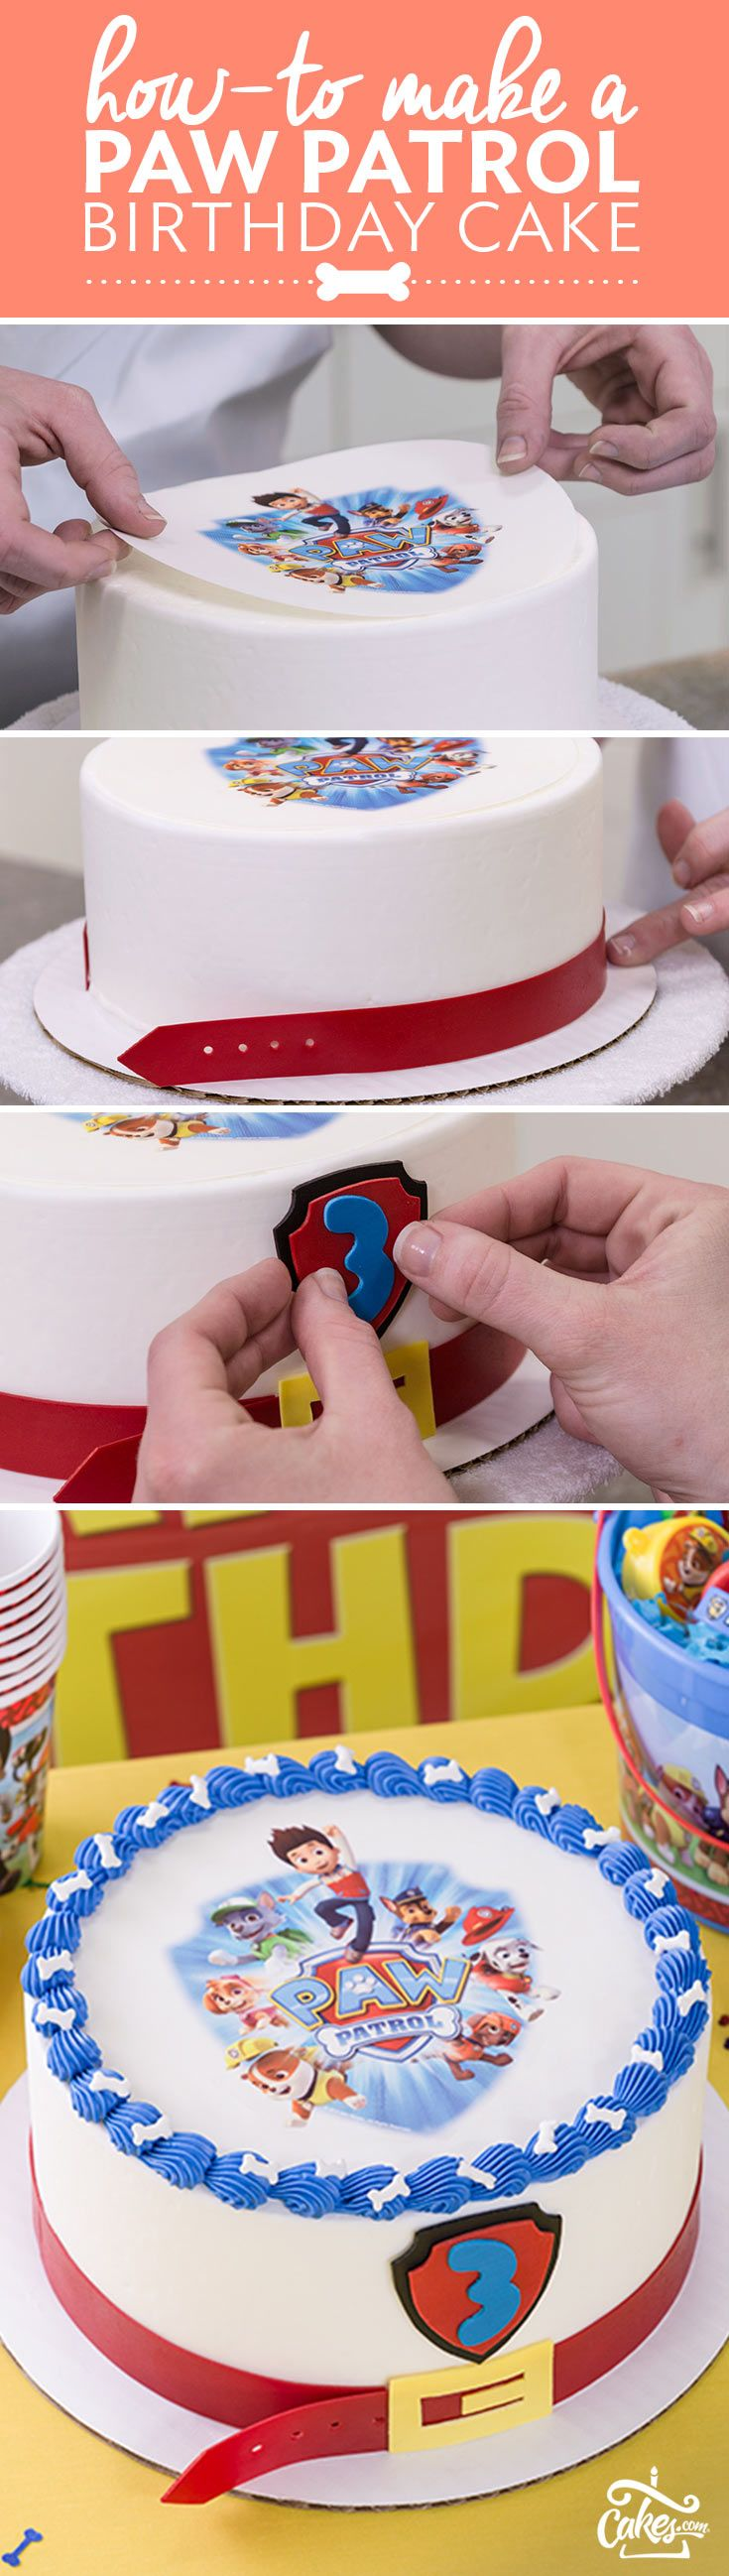 Learn how to make a PAW Patrol birthday party cake by following a step-by-step cake decorating tutorial. #pawpatrol #preschoolbirthday